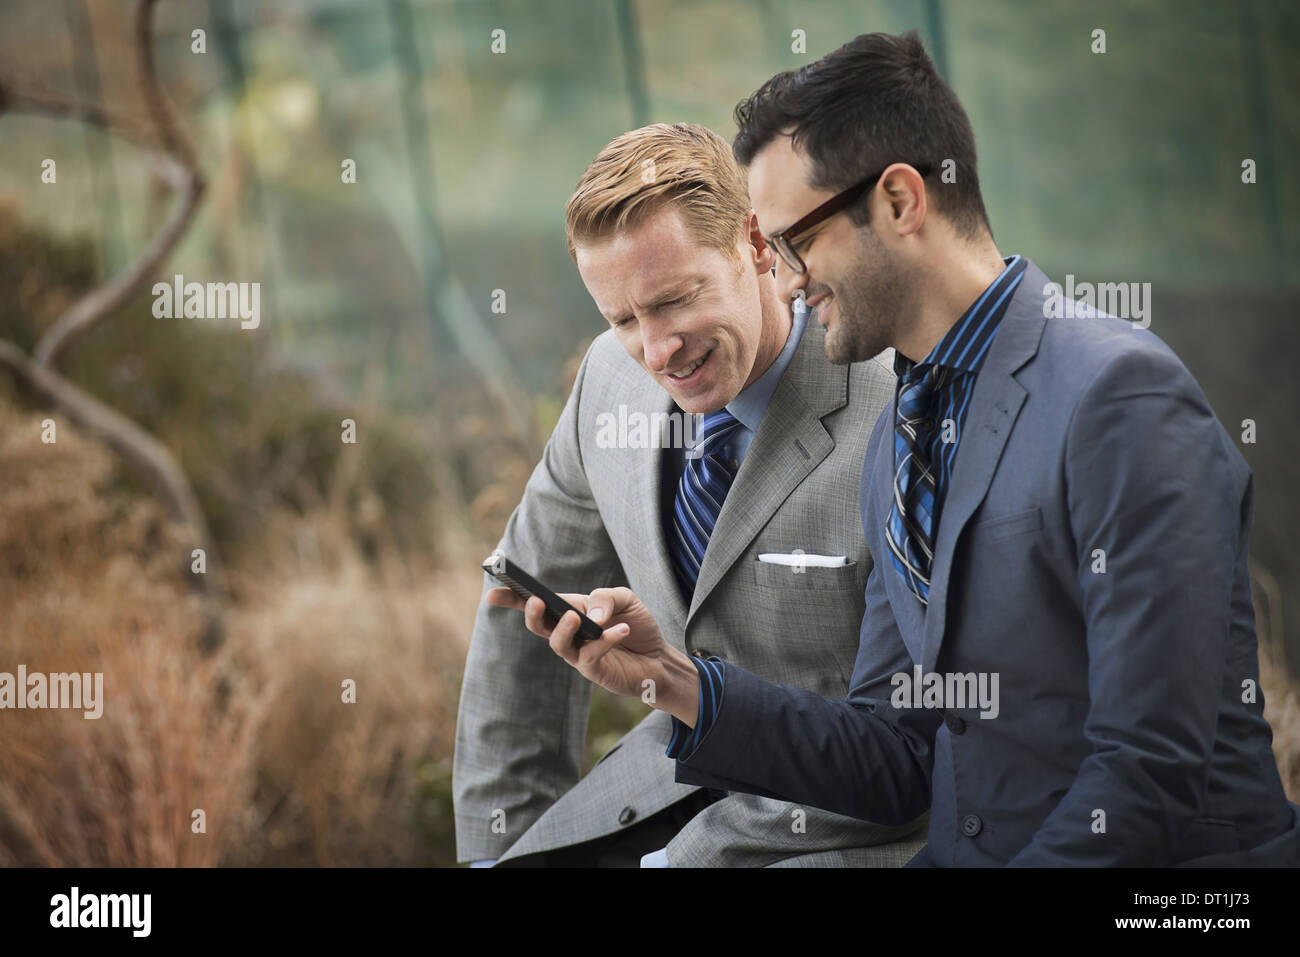 Two men in formal business clothes standing side by side looking at a cell phone screen or mobile phone - Stock Image